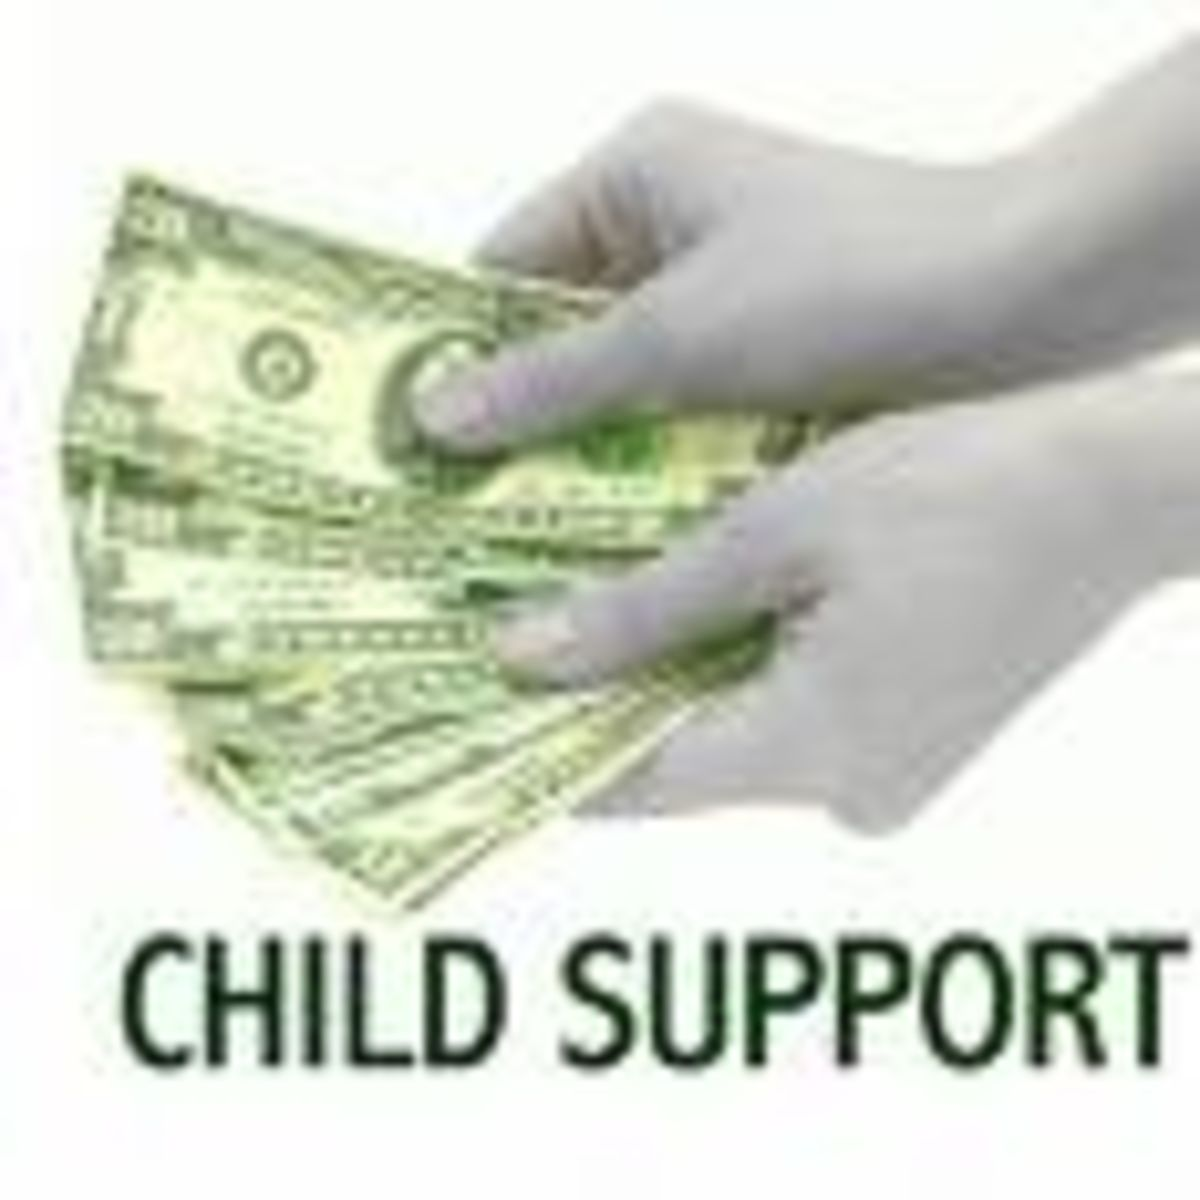 Welfare and child support: Nobody wins | Psychology Today